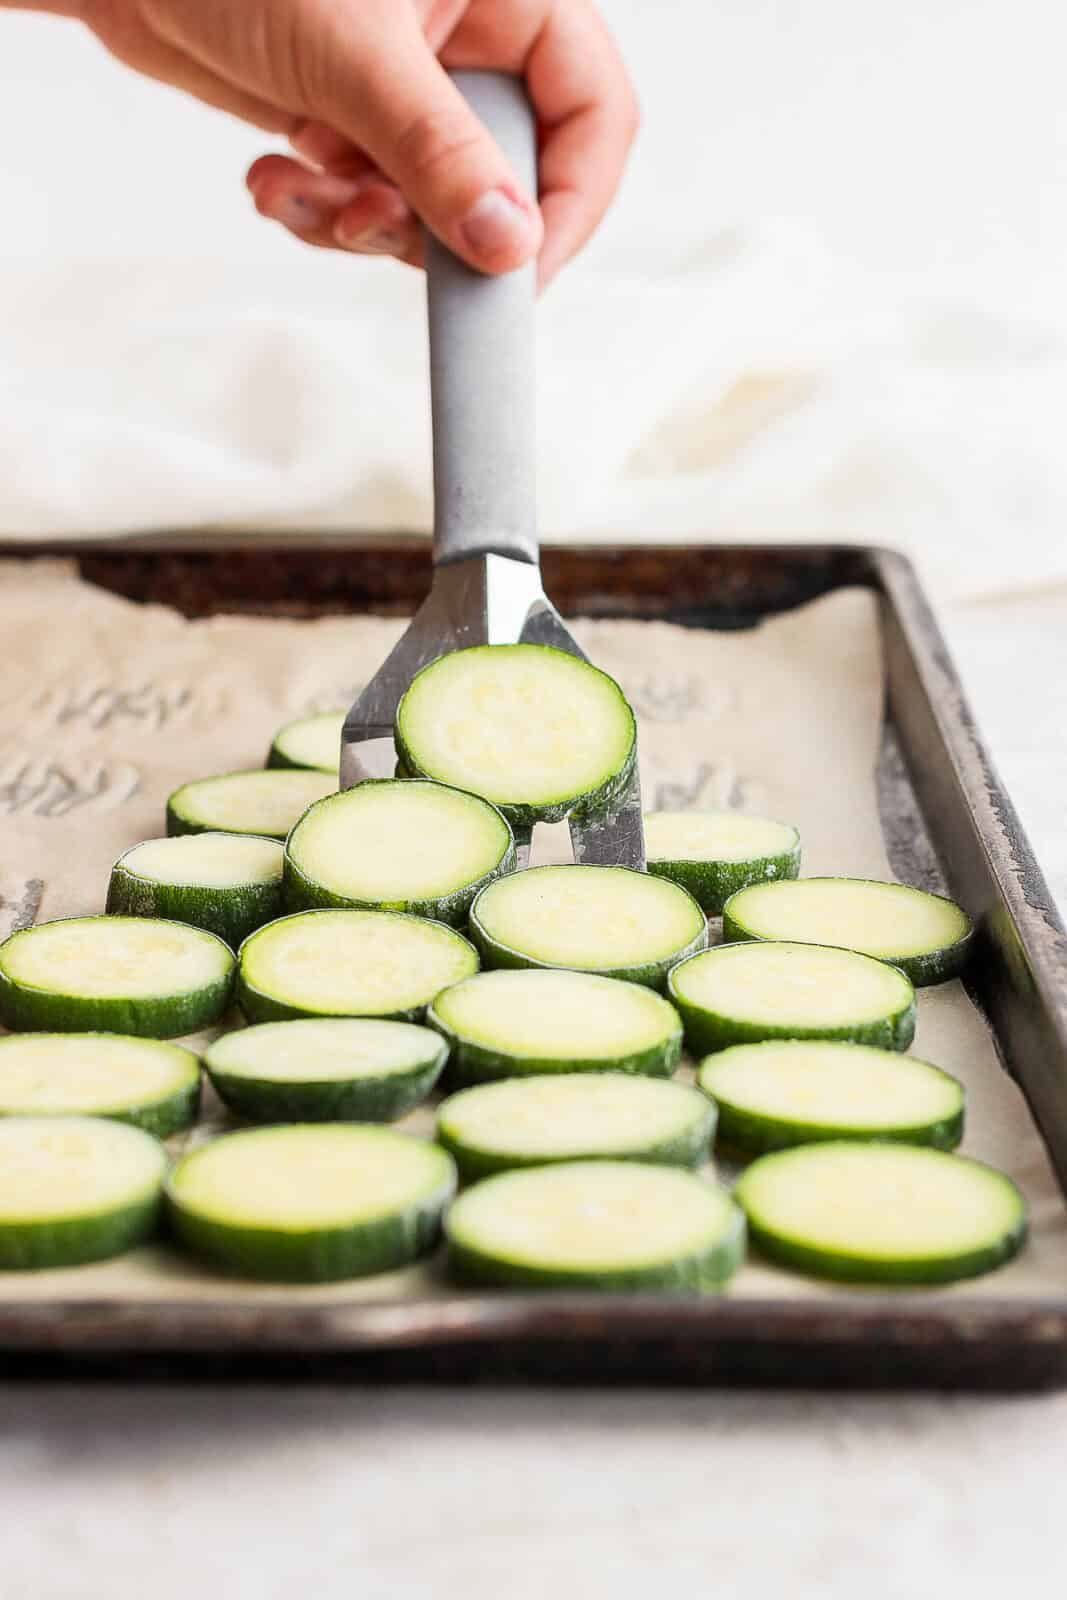 Someone scooping up frozen zucchini slices with a spatula.